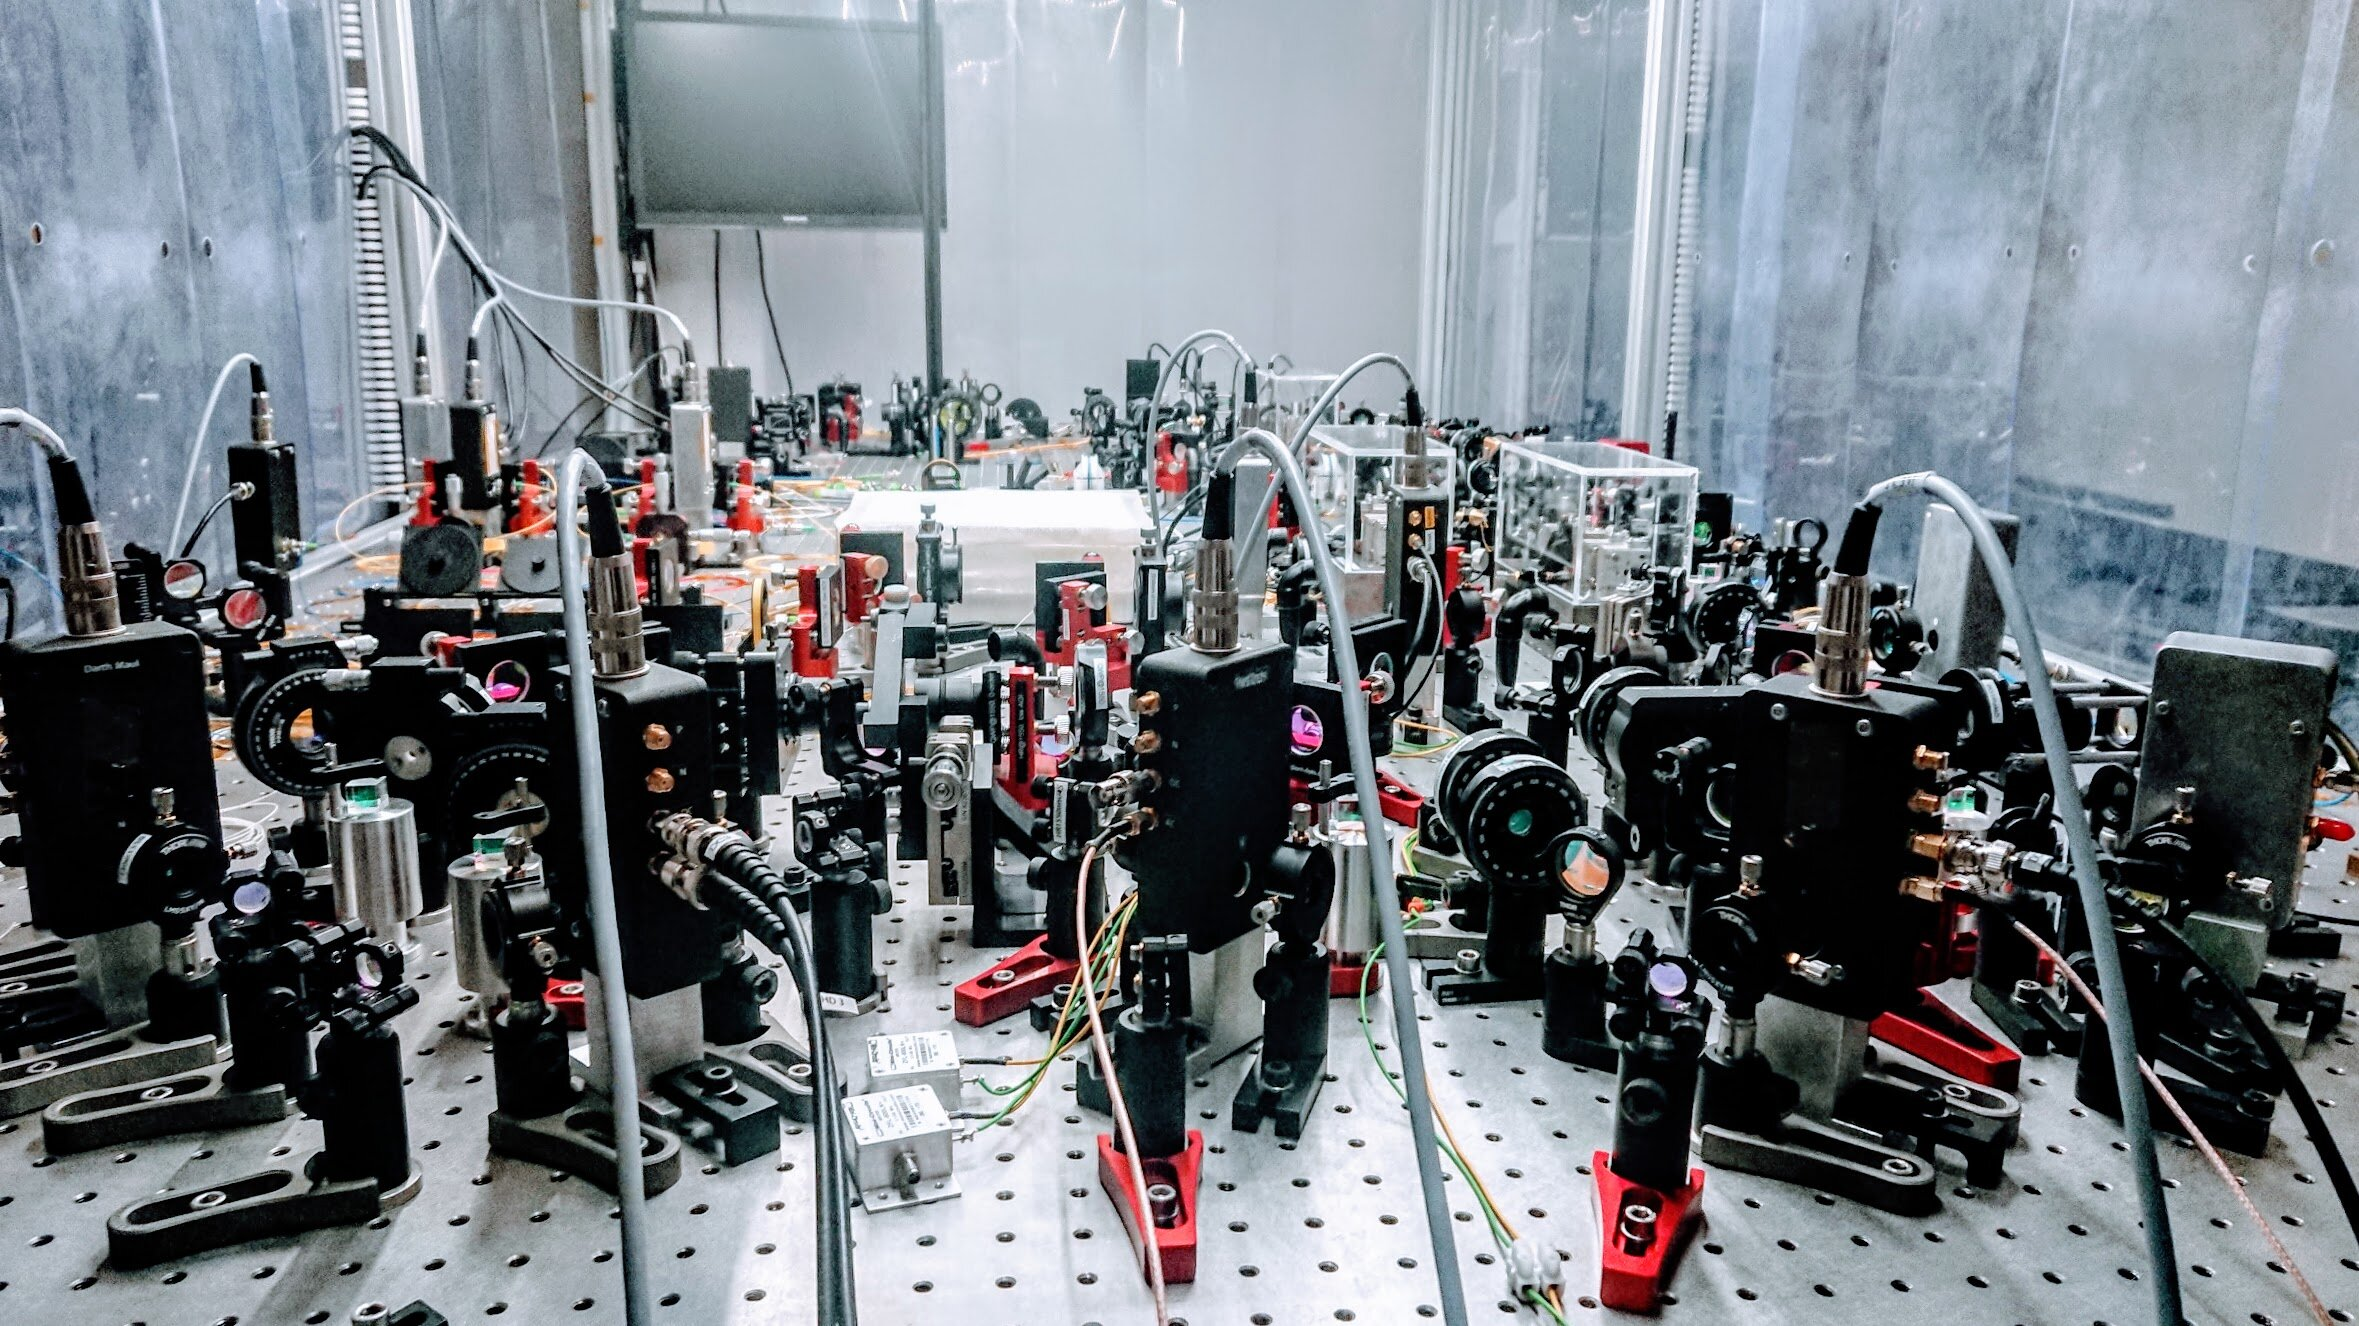 The quantum distributed sensing experimental setup used in the study. Credit: Jonas S. Neergaard-Nielsen.